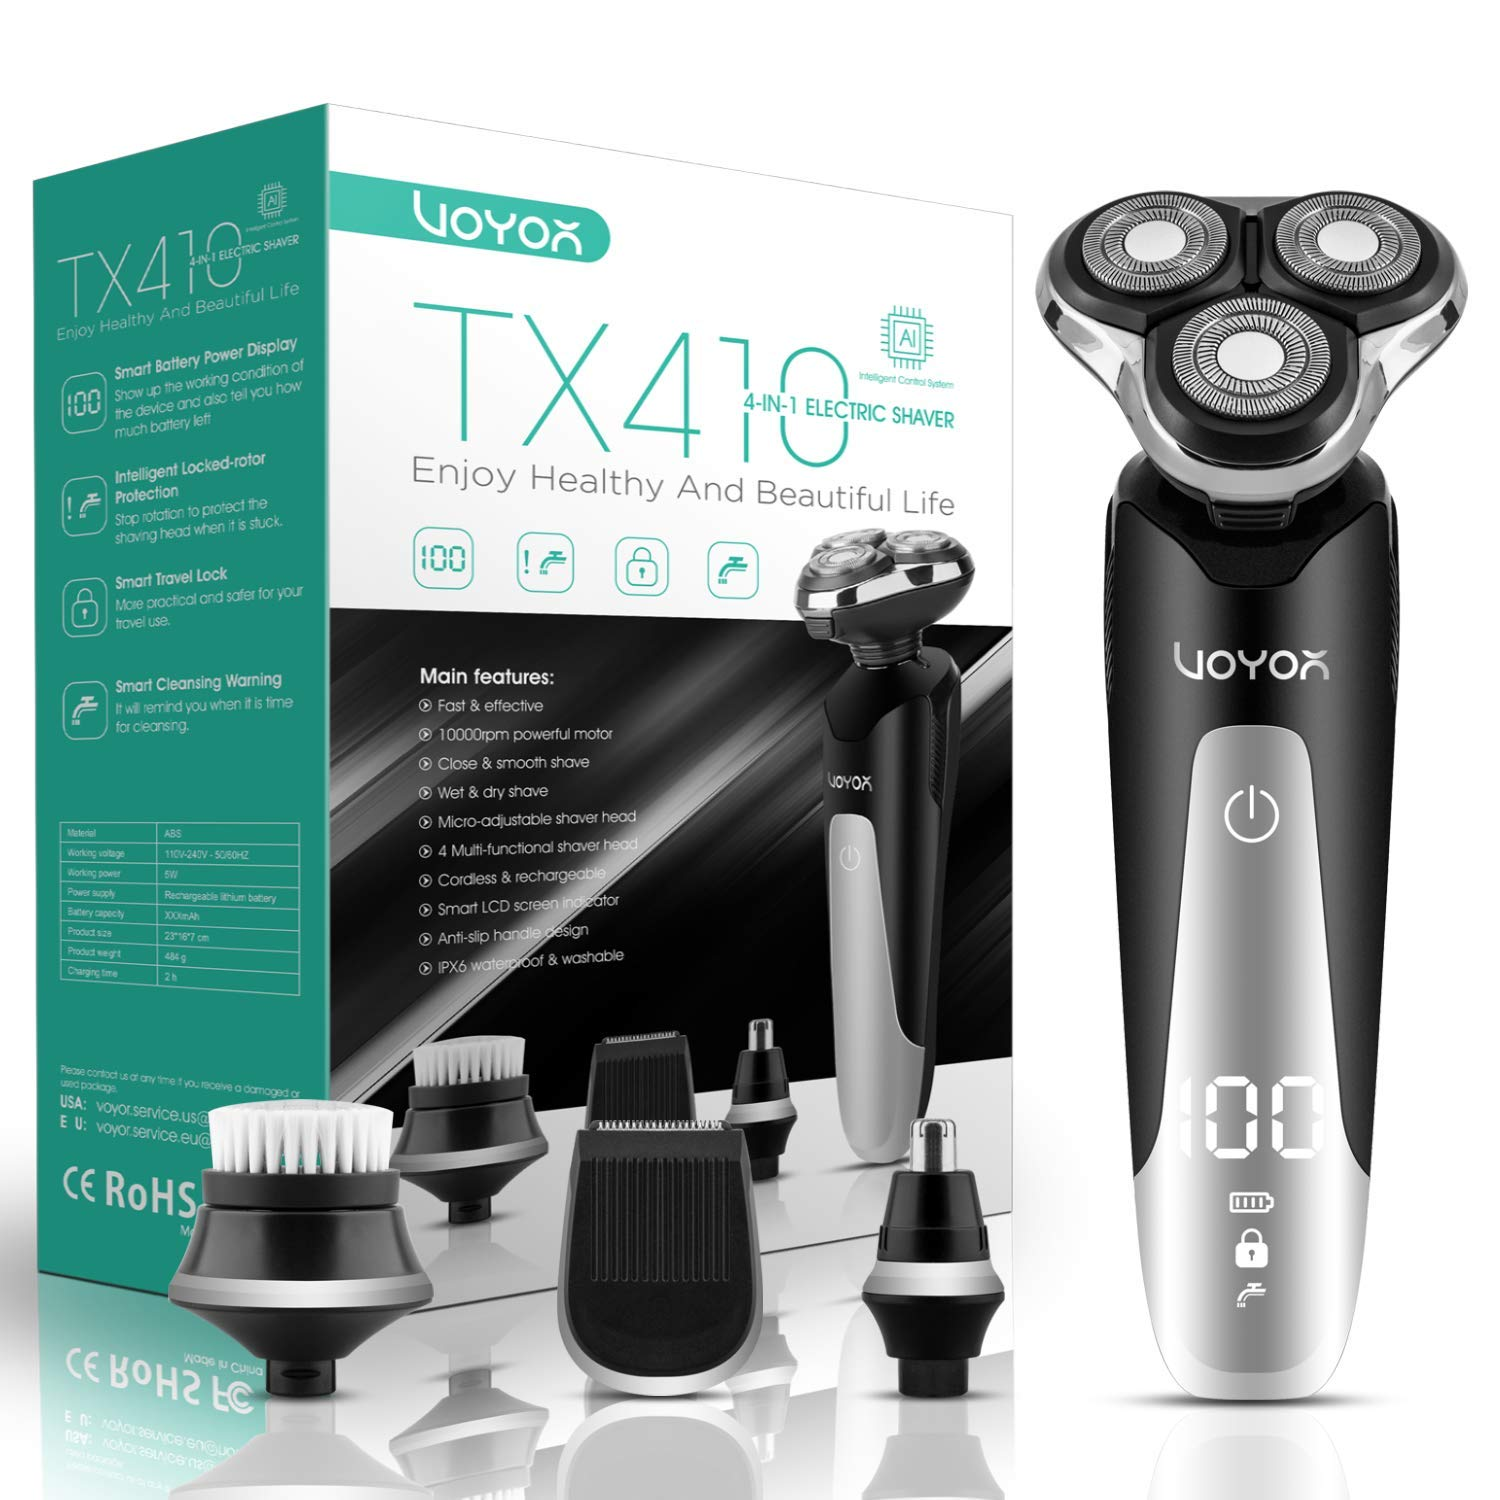 VOYOR Electric Razor for Men Rotary Shavers Rechargeable Beard Trimmer with Nose Hair Trimmer, Sideburn Mustache Trimmers and Face Brush Heads, 4 in 1 Wet and Dry Shaver Set, IPX6 Waterproof TX410